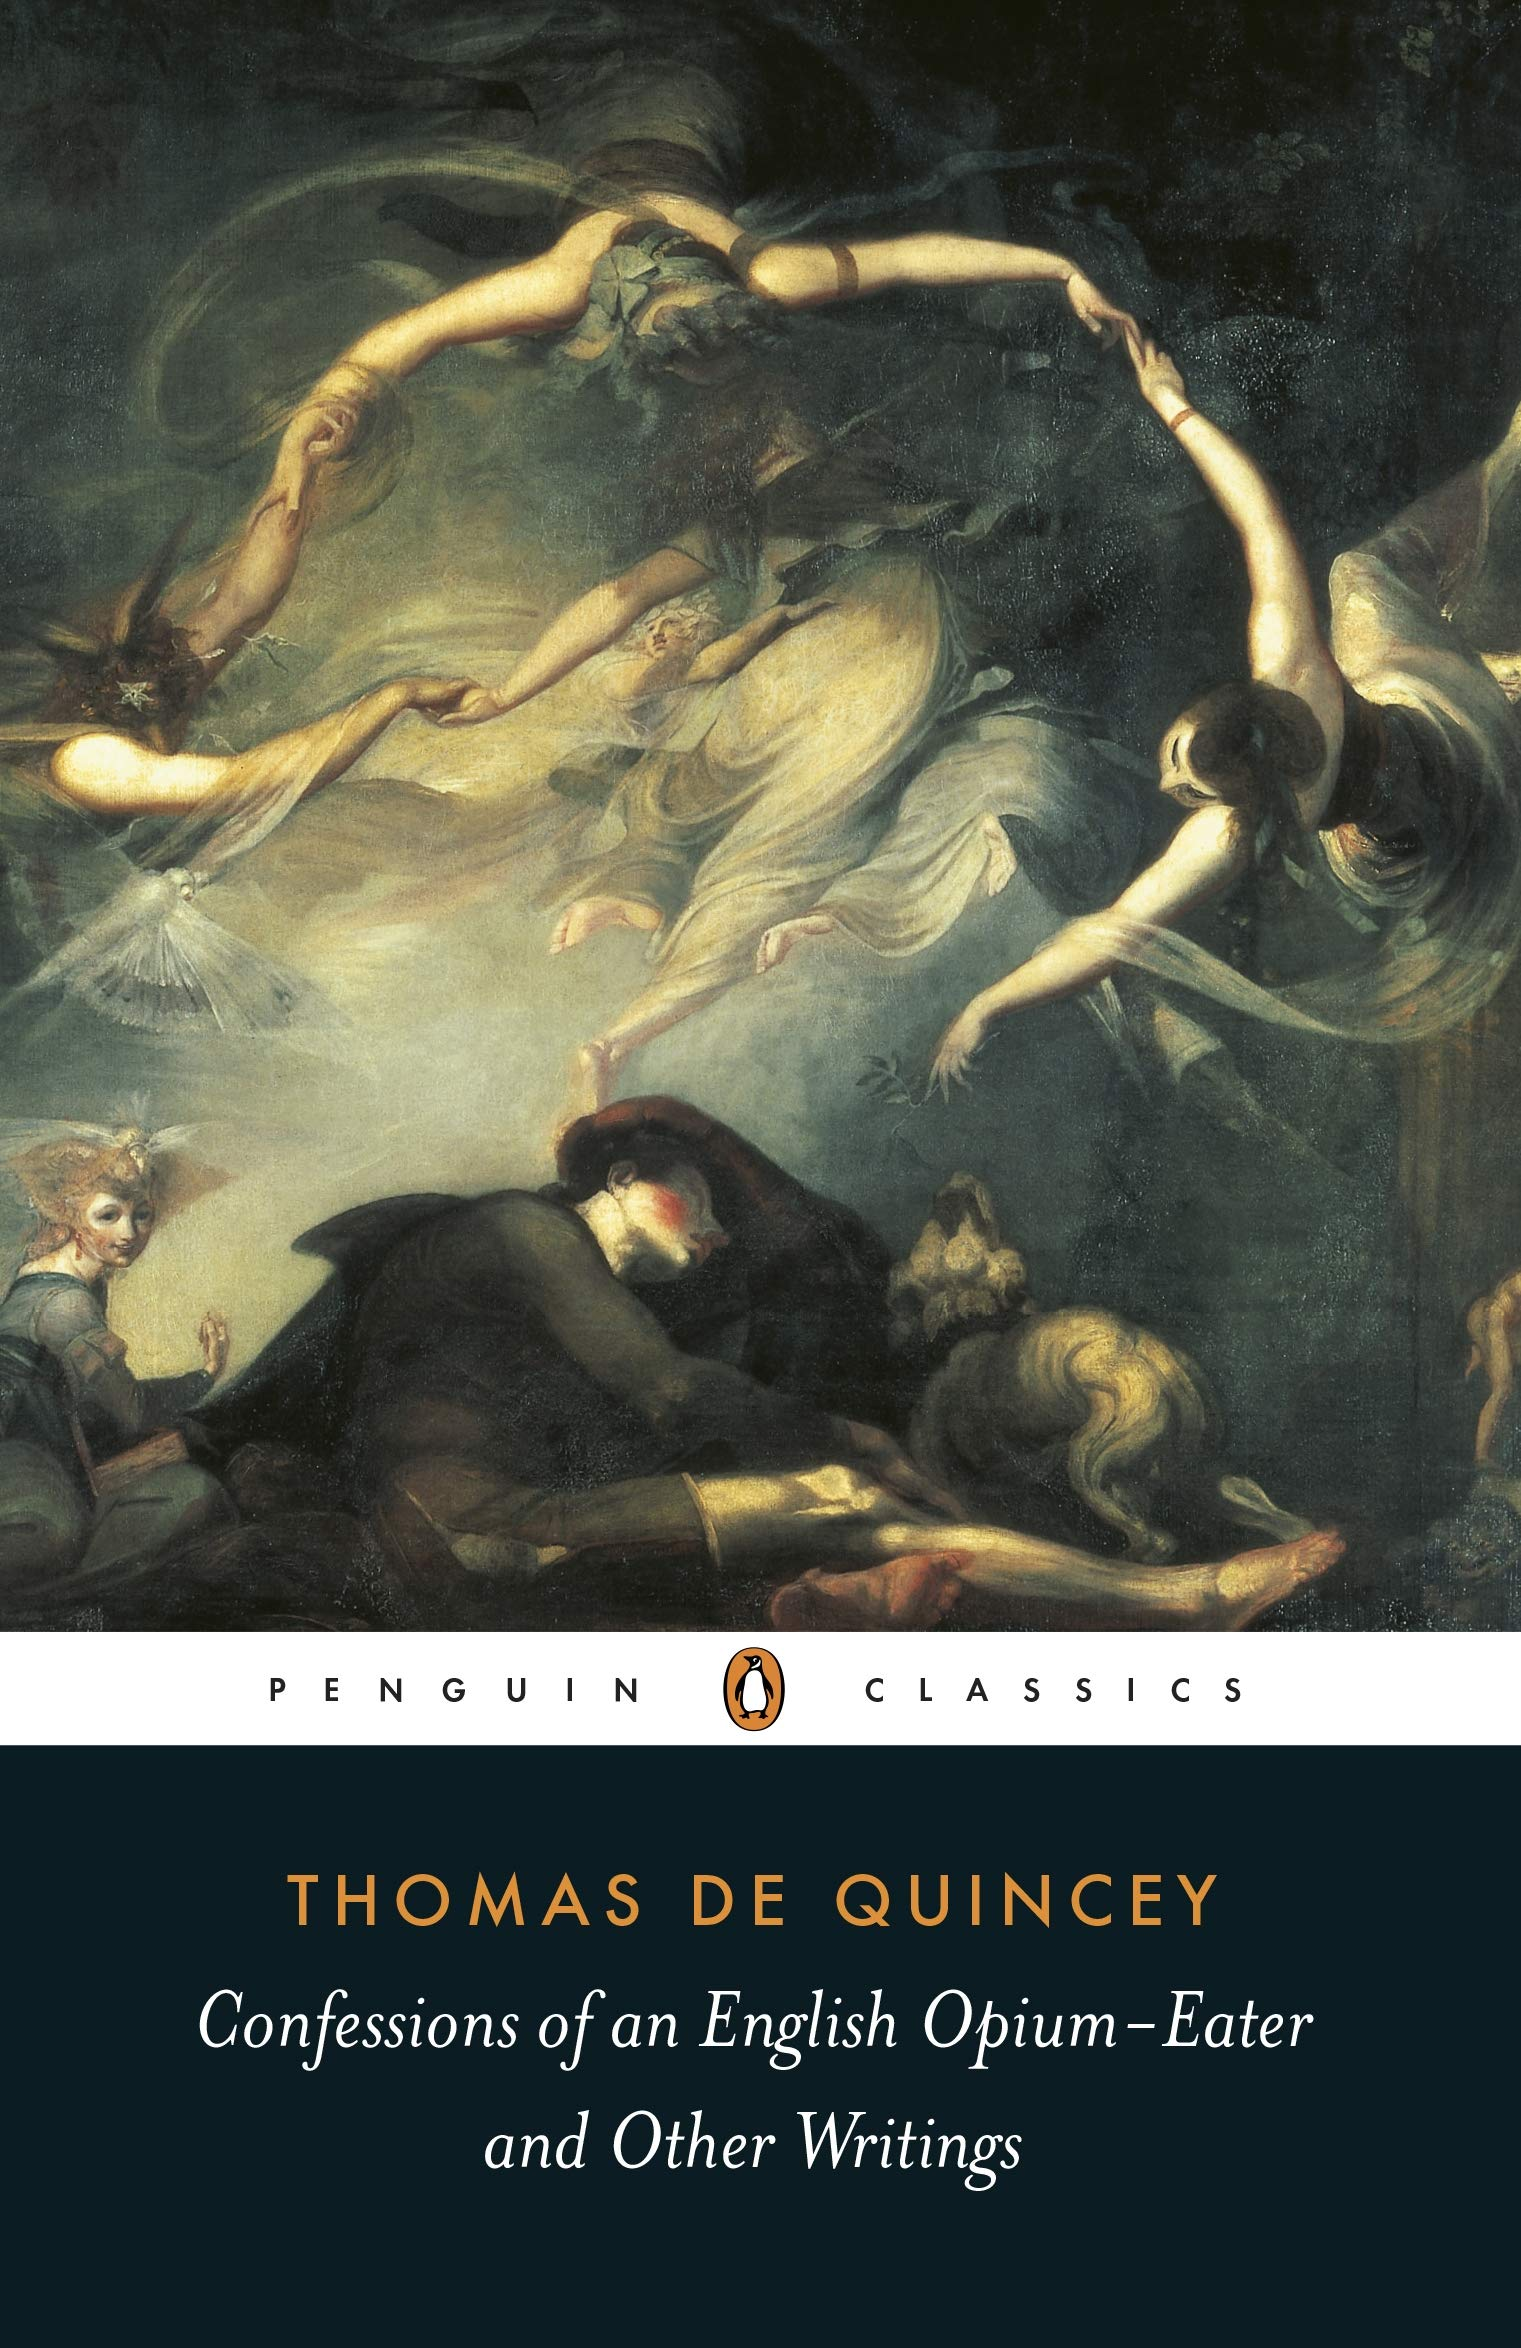 Confessions of an English Opium Eater: And Other Writings (Penguin  Classics): Amazon.co.uk: De Quincey, Thomas, Milligan, Barry:  9780140439014: Books